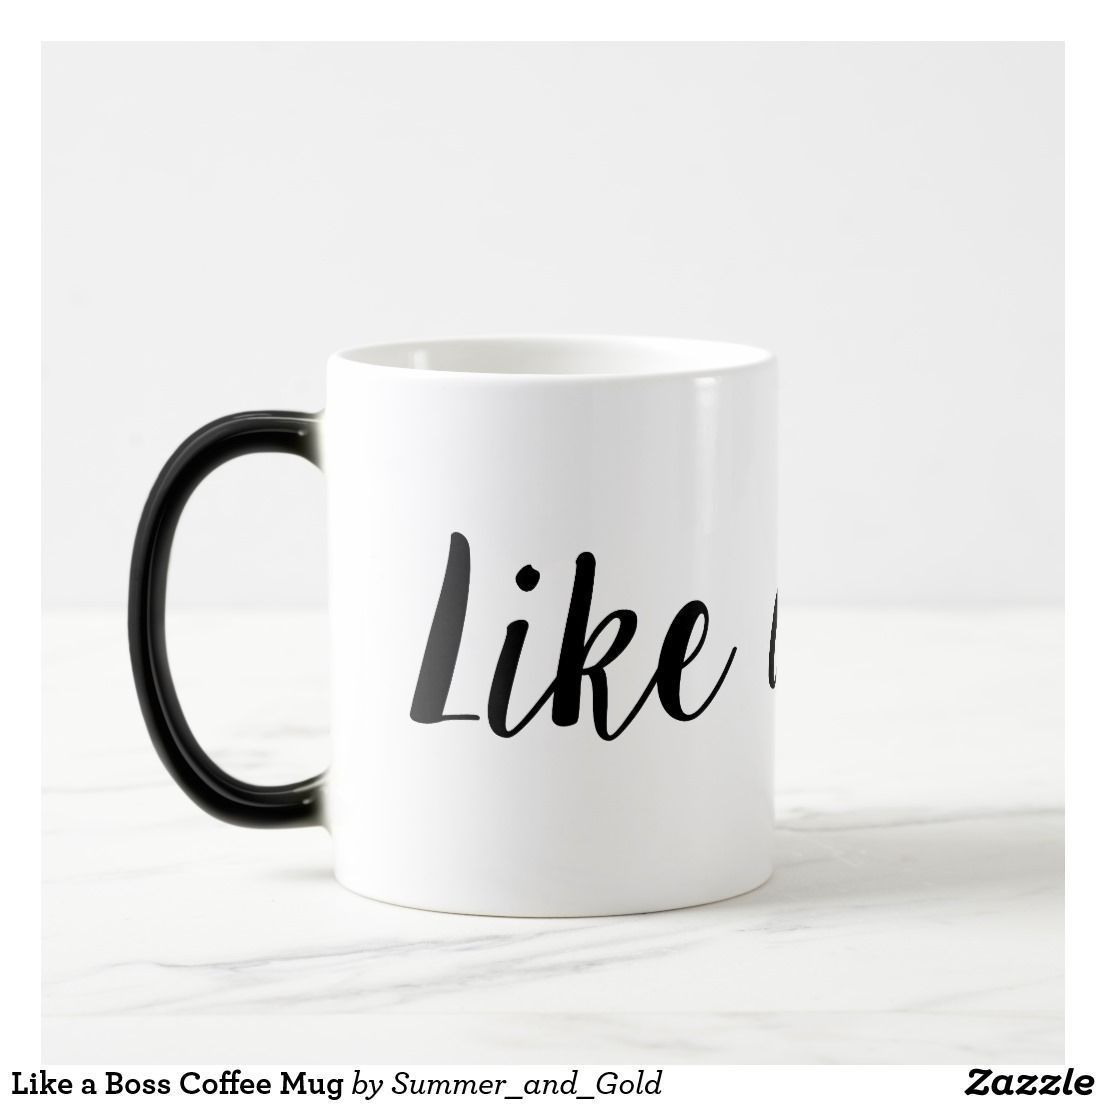 Like a Boss Coffee Mug #bosscoffee Like a Boss Coffee Mug #bosscoffee Like a Boss Coffee Mug #bosscoffee Like a Boss Coffee Mug #bosscoffee Like a Boss Coffee Mug #bosscoffee Like a Boss Coffee Mug #bosscoffee Like a Boss Coffee Mug #bosscoffee Like a Boss Coffee Mug #bosscoffee